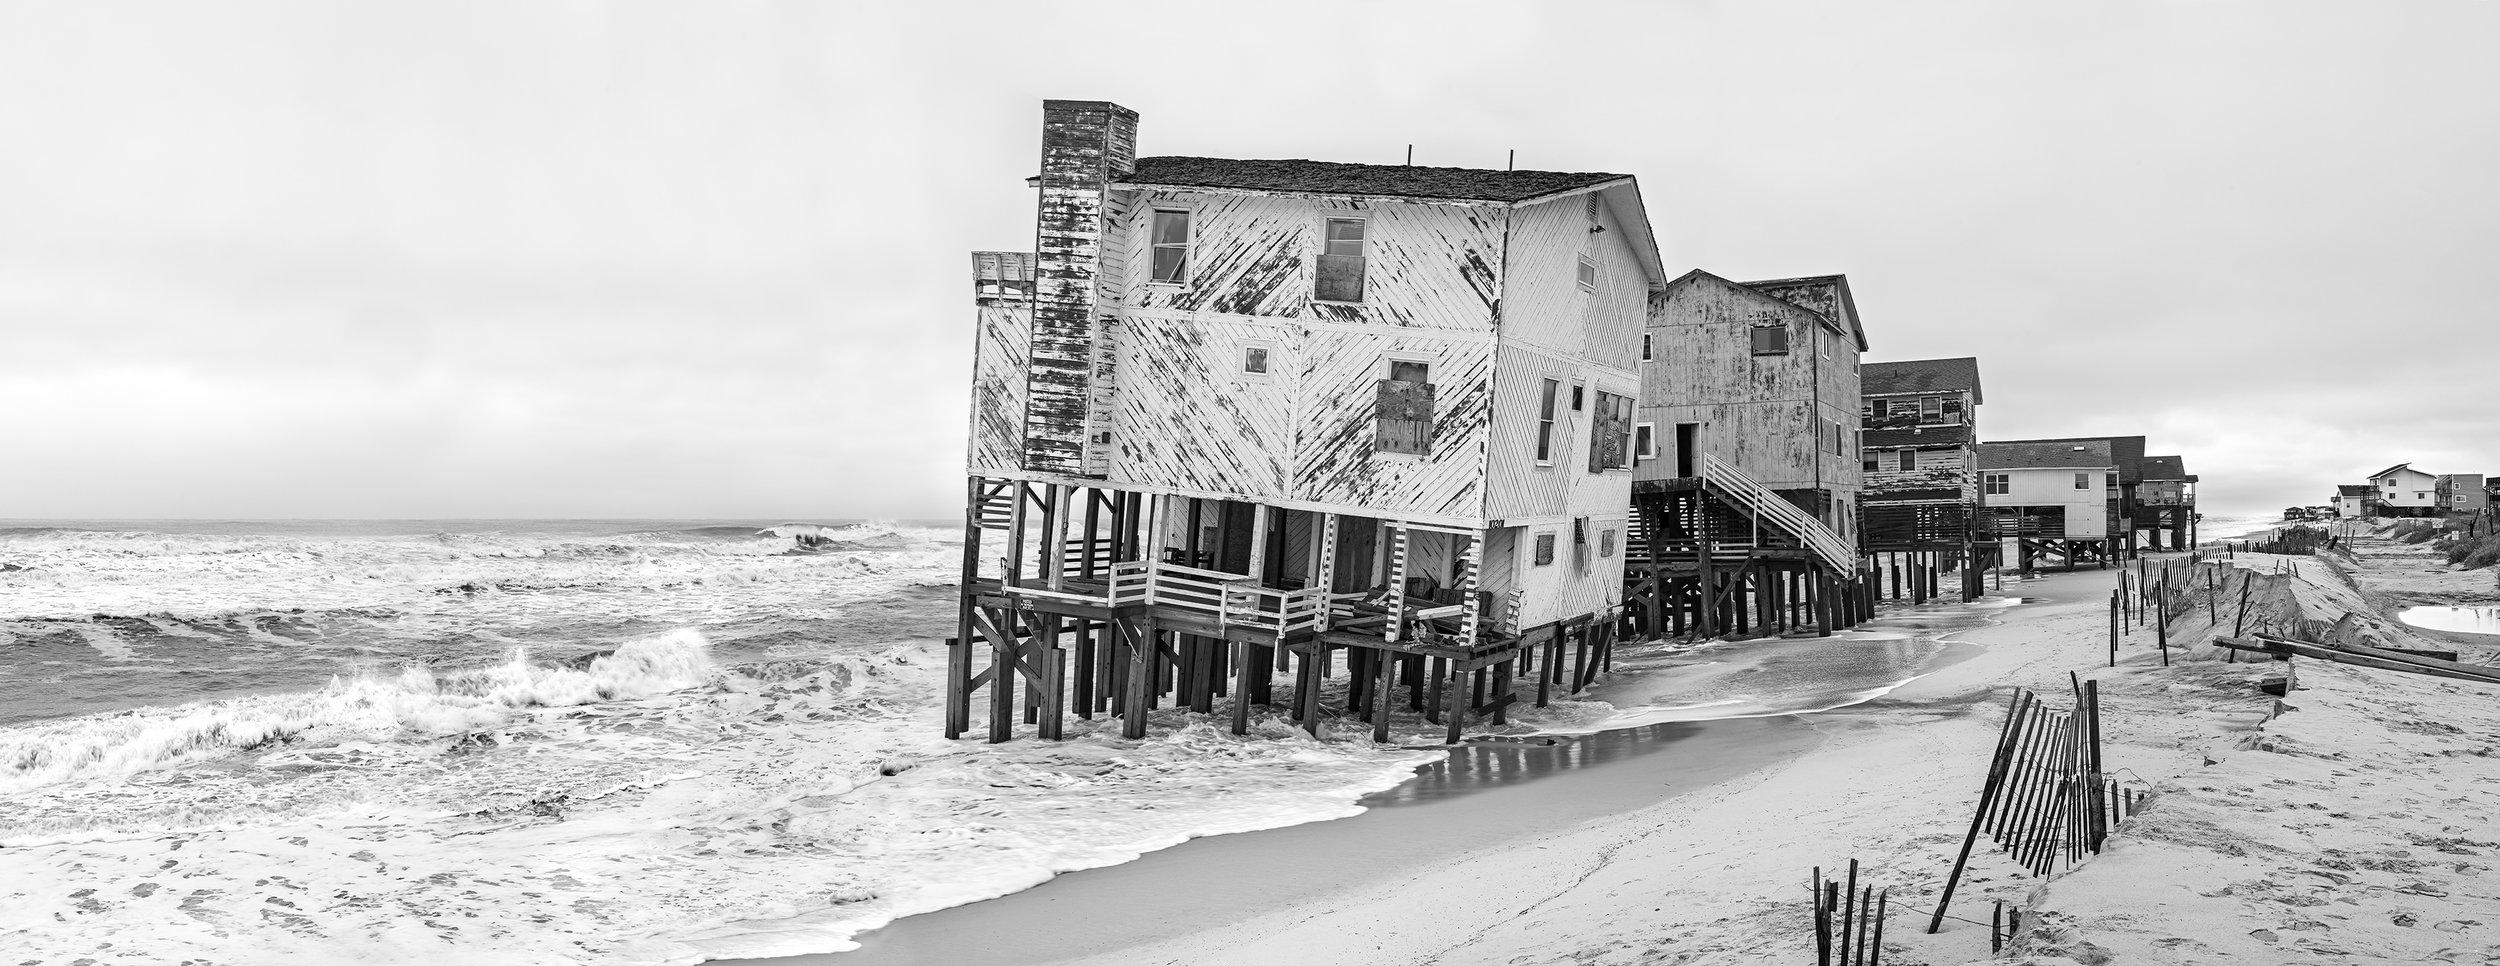 "E Seagull Dr. Nags Head, NC. Archival Inkjet Print on 100% Cotton Photo Rag, 10"" x 25.5""  A strong winter storm hit the town of Nags Head around Veterans Day in 2009, damaging the houses on E Seagull Dr. After the houses were condemned, a lengthy legal battle ensued, questioning the limits of private property rights and the ability of the town to protect the public beaches. After 5 years in court and $1.5 million settlement, the houses were finally removed."